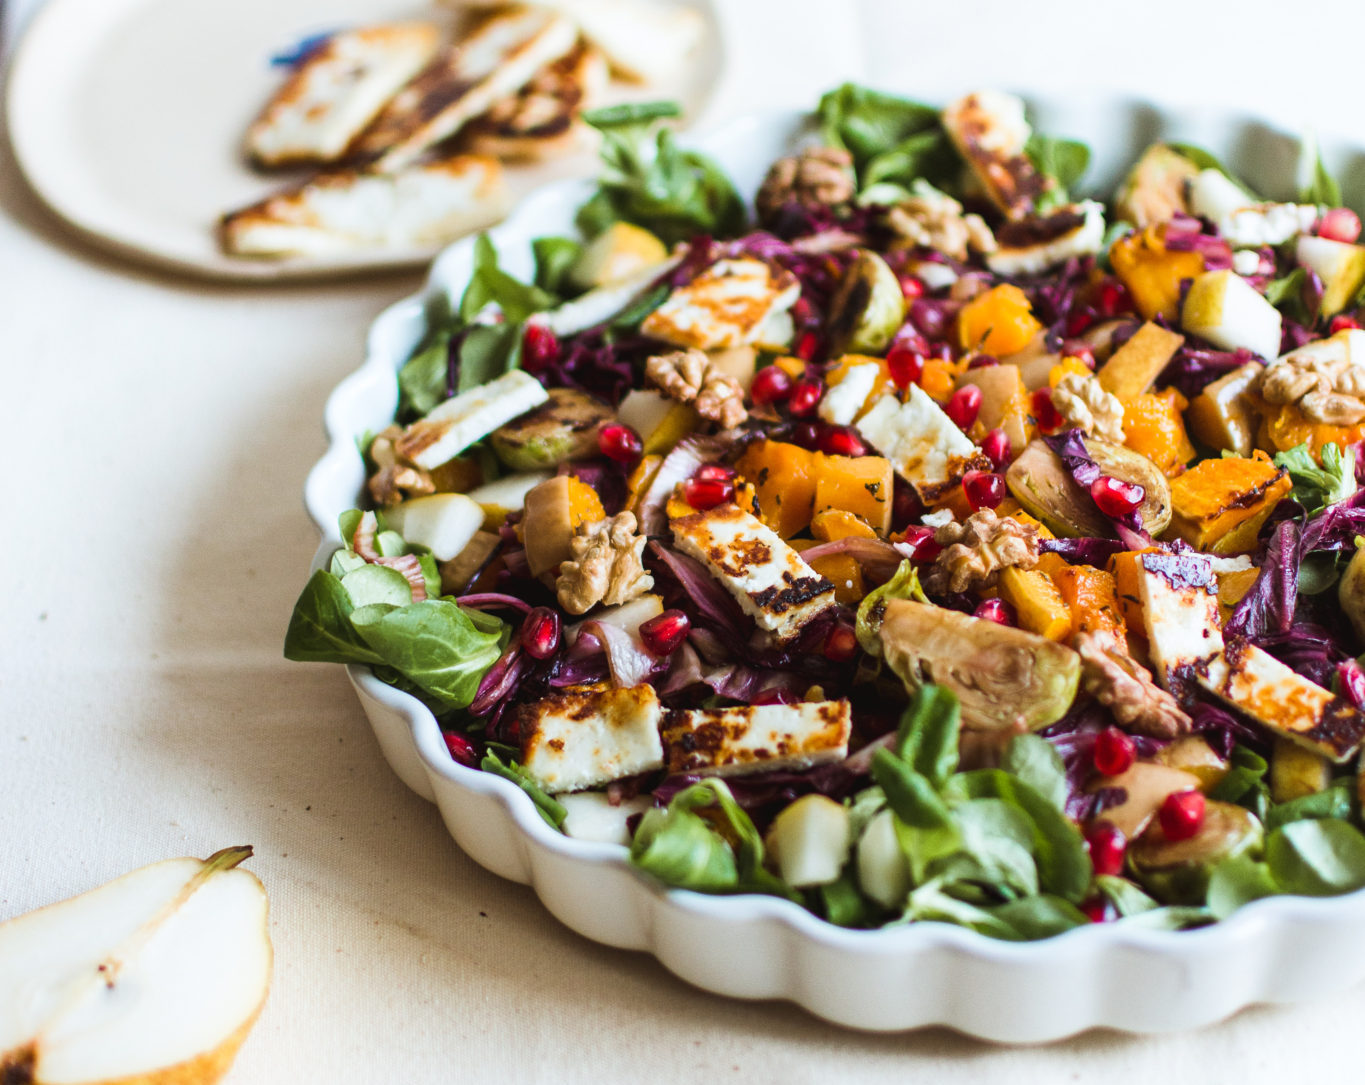 Supercharged Butternut and Beet Salad